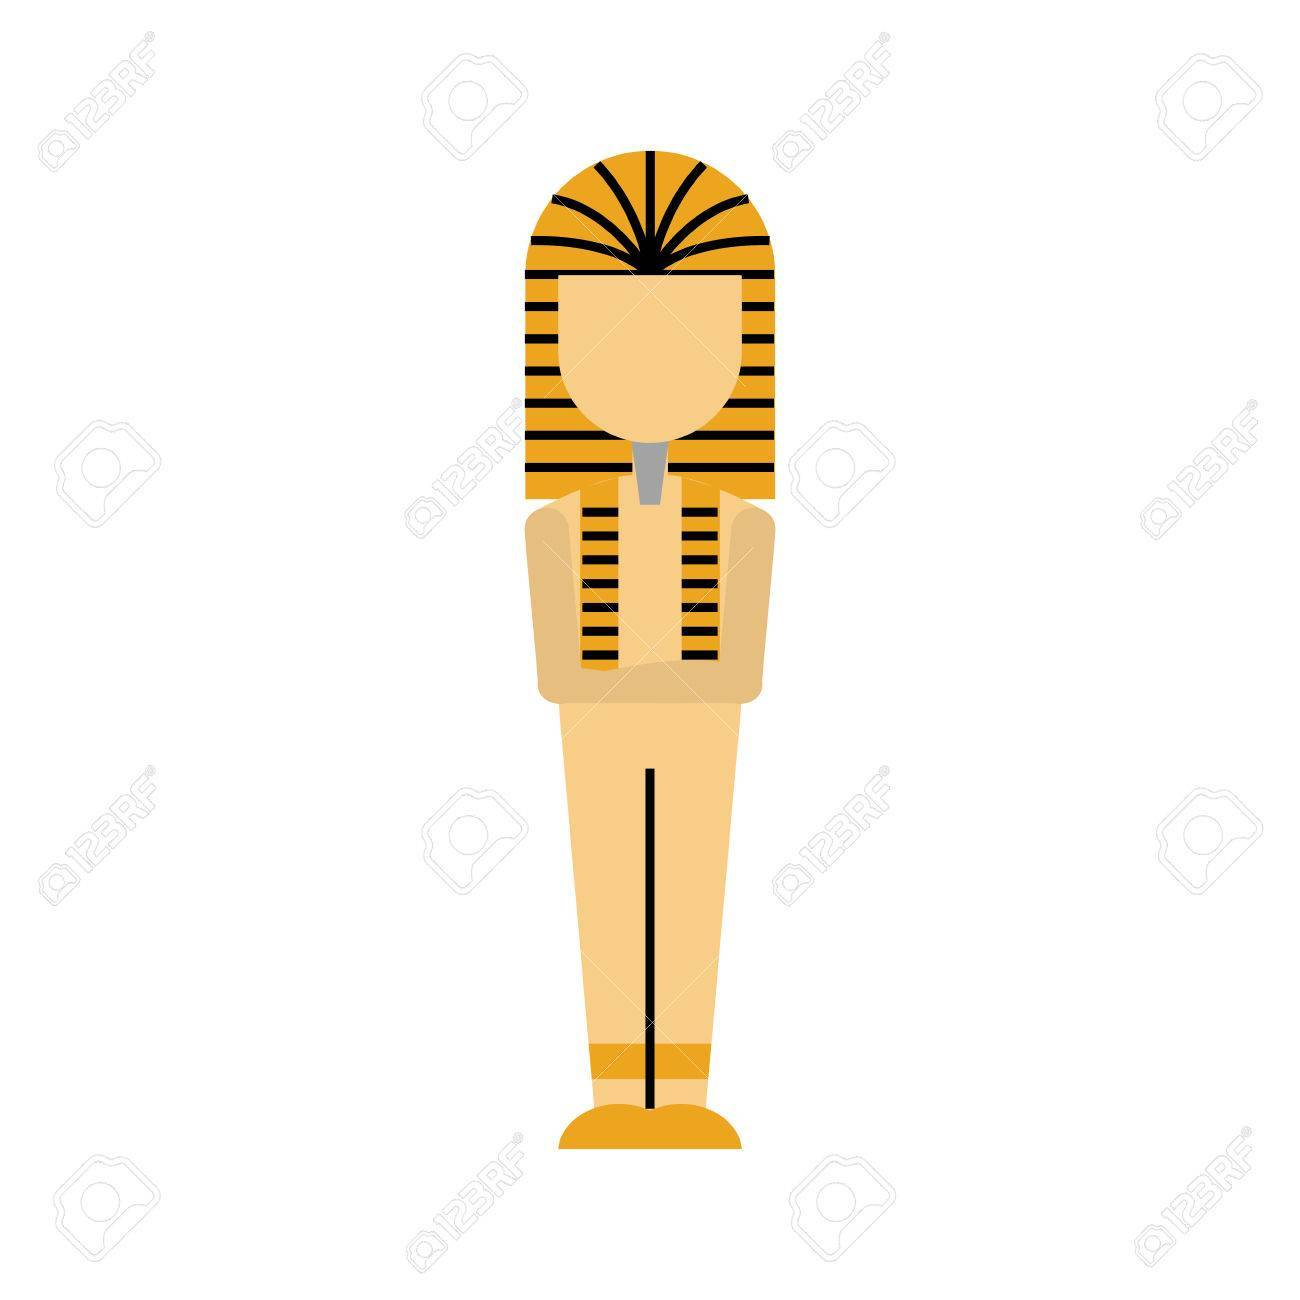 Tombs egyptian clipart jpg royalty free stock Ancient egyptian tomb icon » Clipart Portal jpg royalty free stock